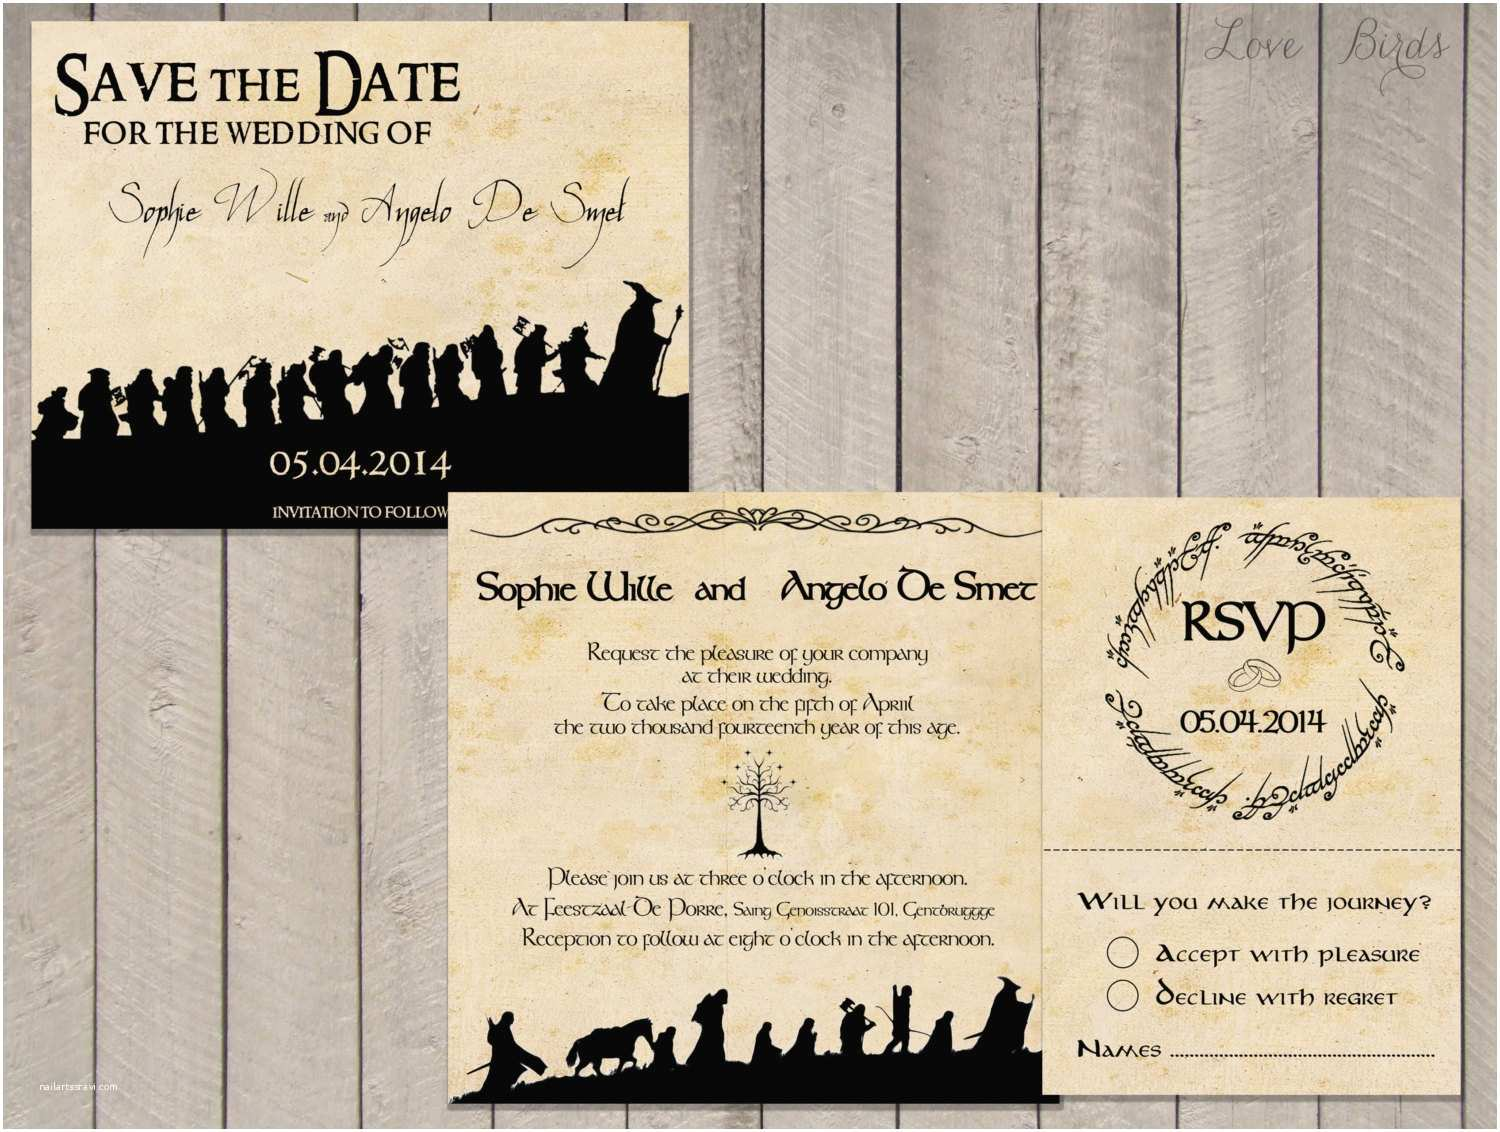 Lord Of the Rings Wedding Invitations Wedding Invitation Set Lord Of the Rings Save the Date